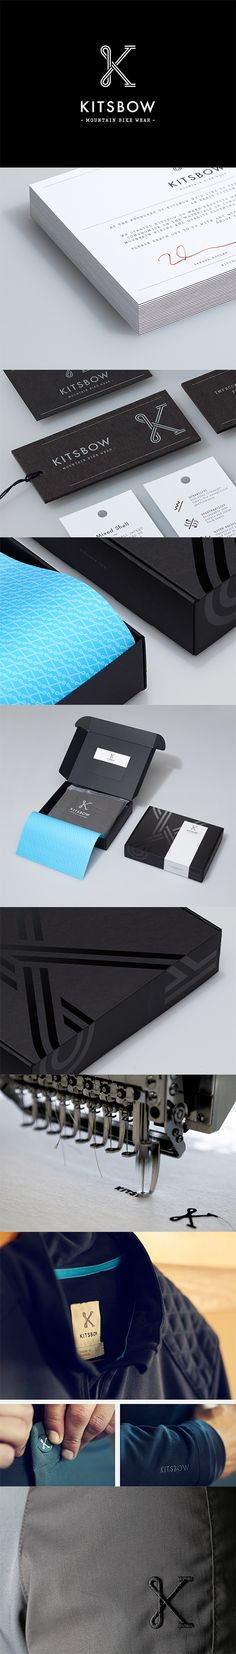 Awesome logo with packaging & promotional/marketing material